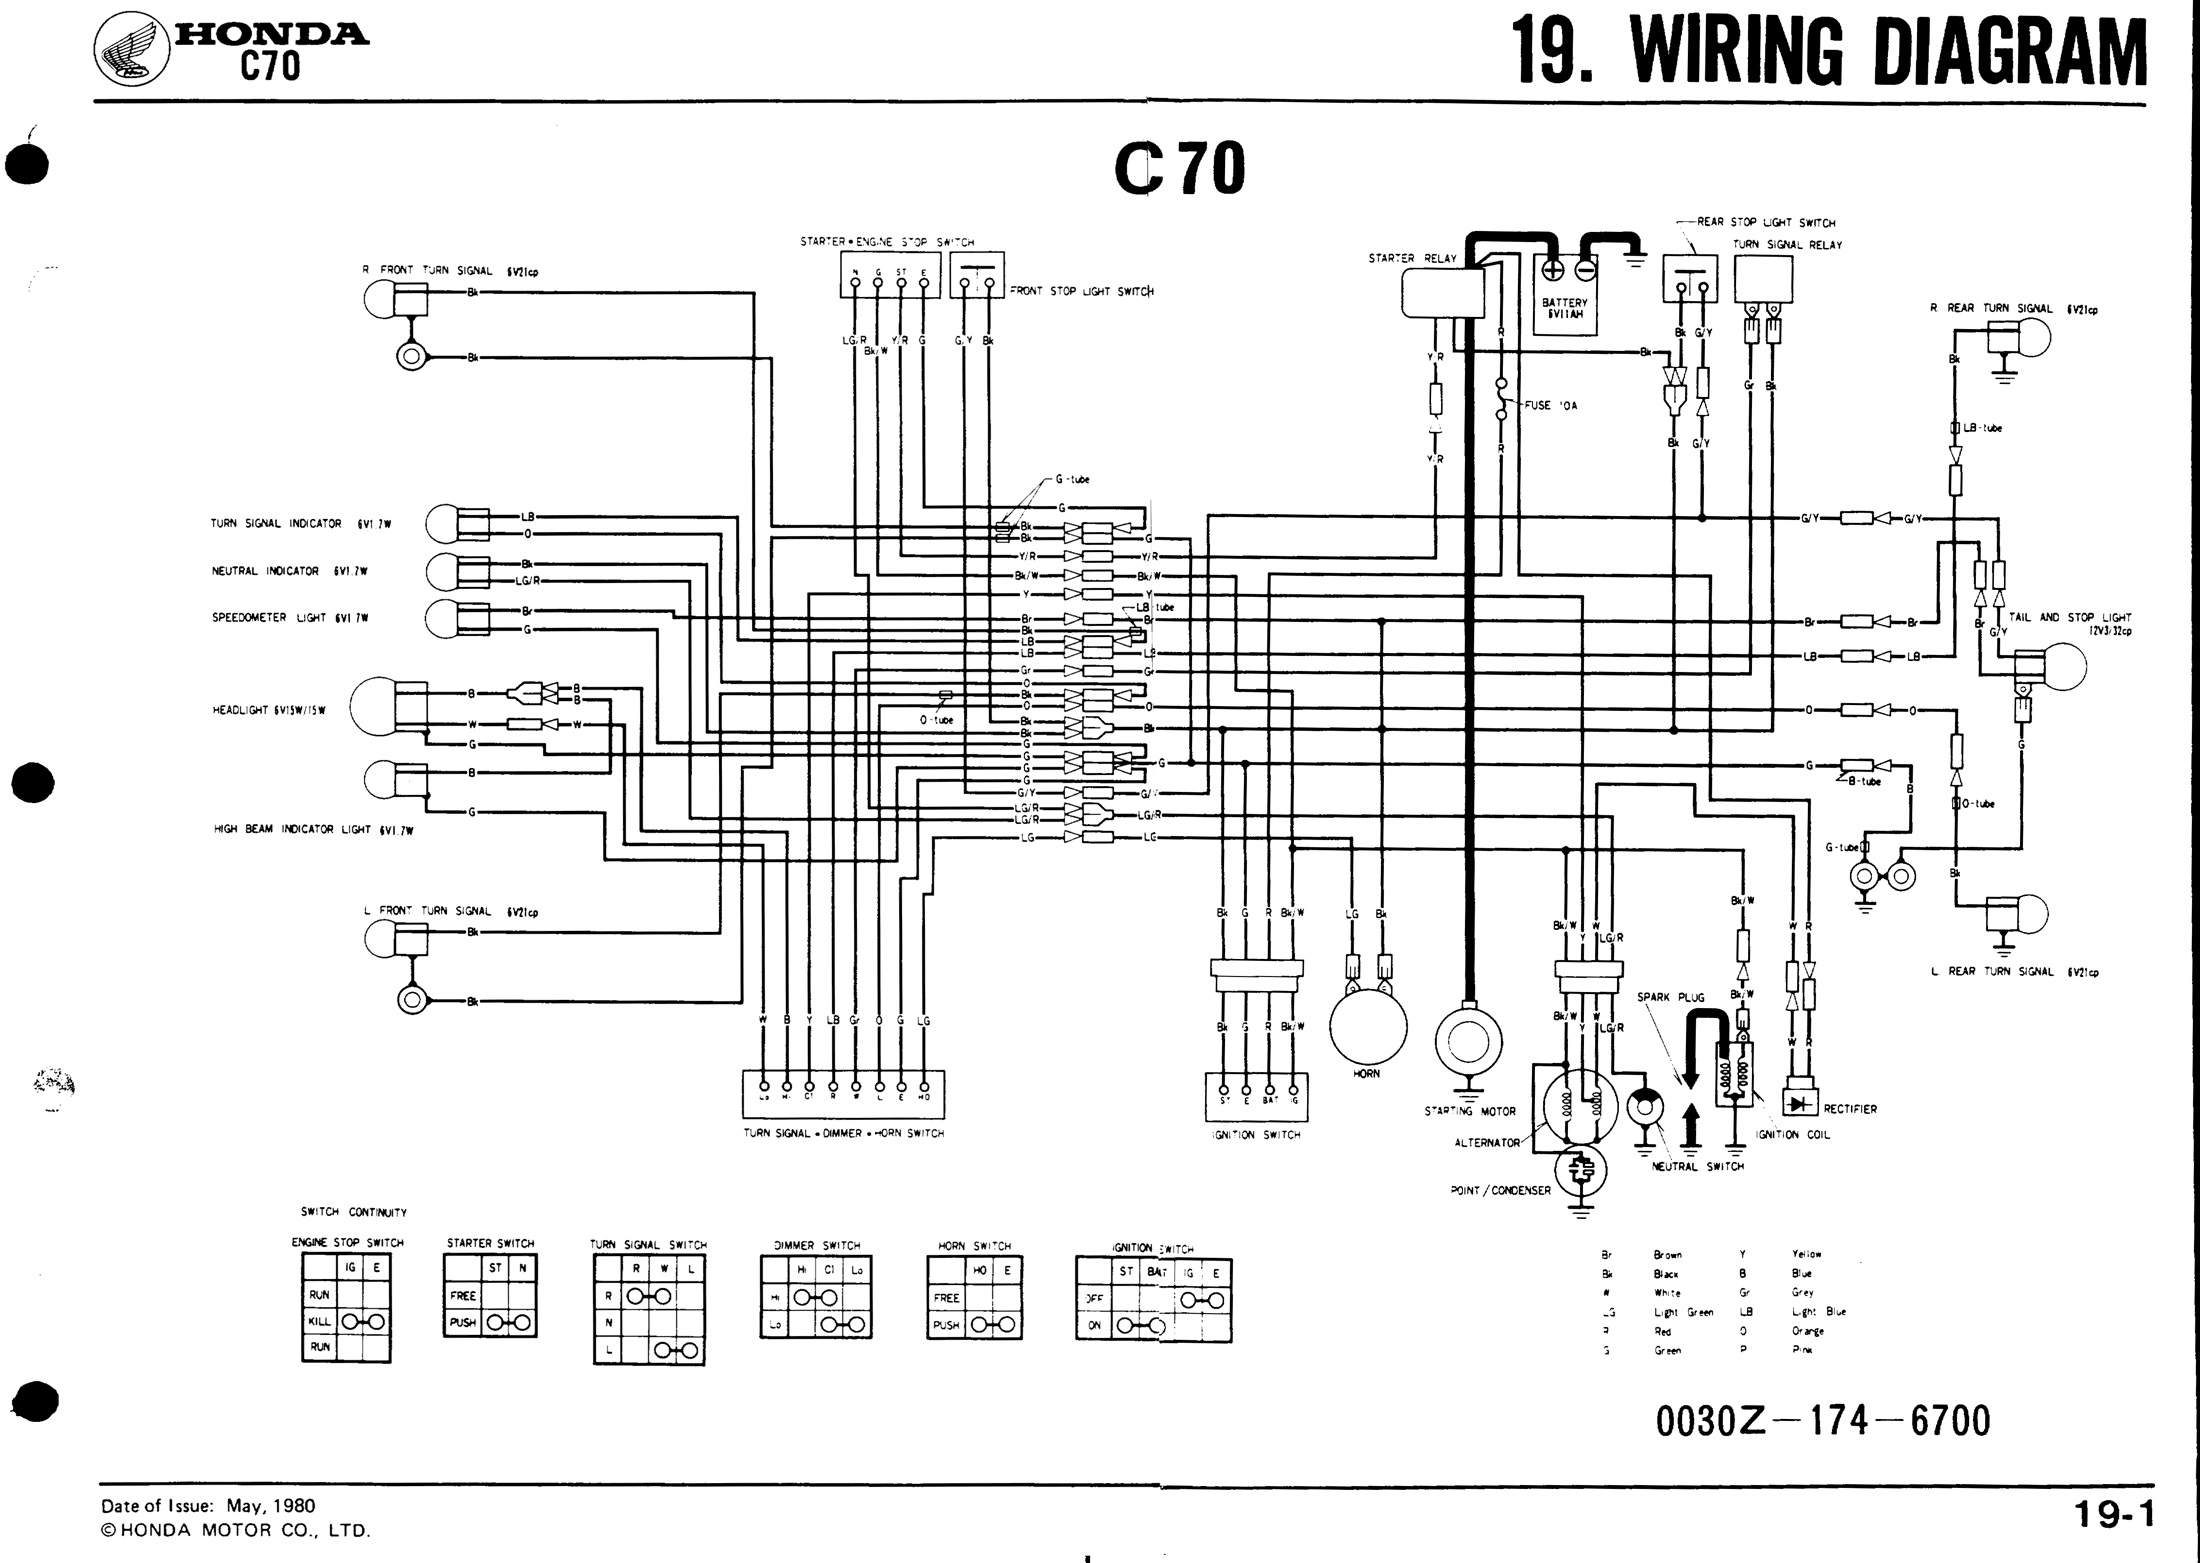 Yfm400fwn Wiring Diagrams also Mazda 6 3 0 2003 Specs And Images besides Underground Mining Techniques And Risks additionally Cholestérol moreover Watch. on 150 cc diagram